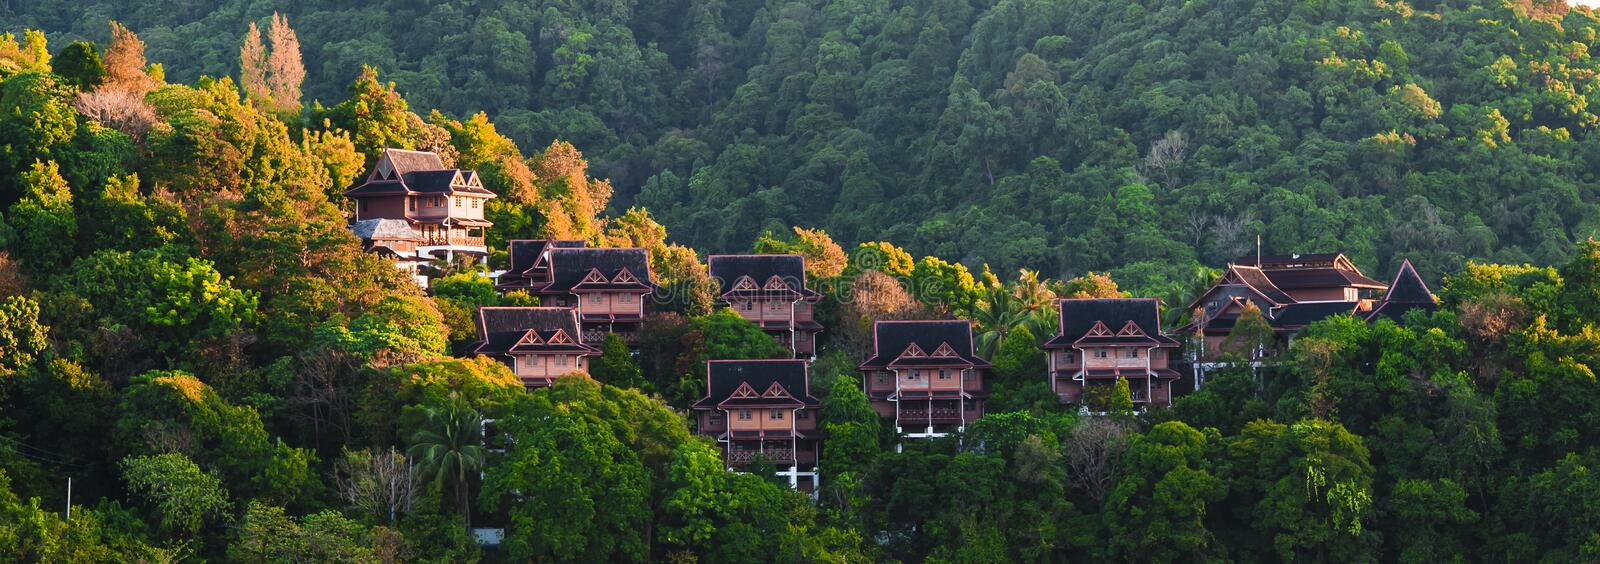 Download Houses in Langkawi stock image. Image of night, architecture - 30099035